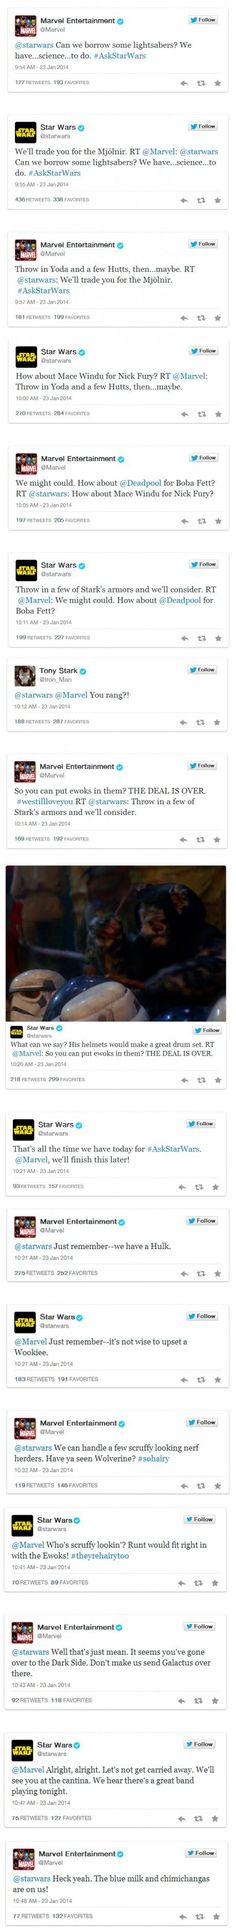 Star Wars and Marvel on Twitter. So cool! Love the Star Wars comment about Wolverine! :D